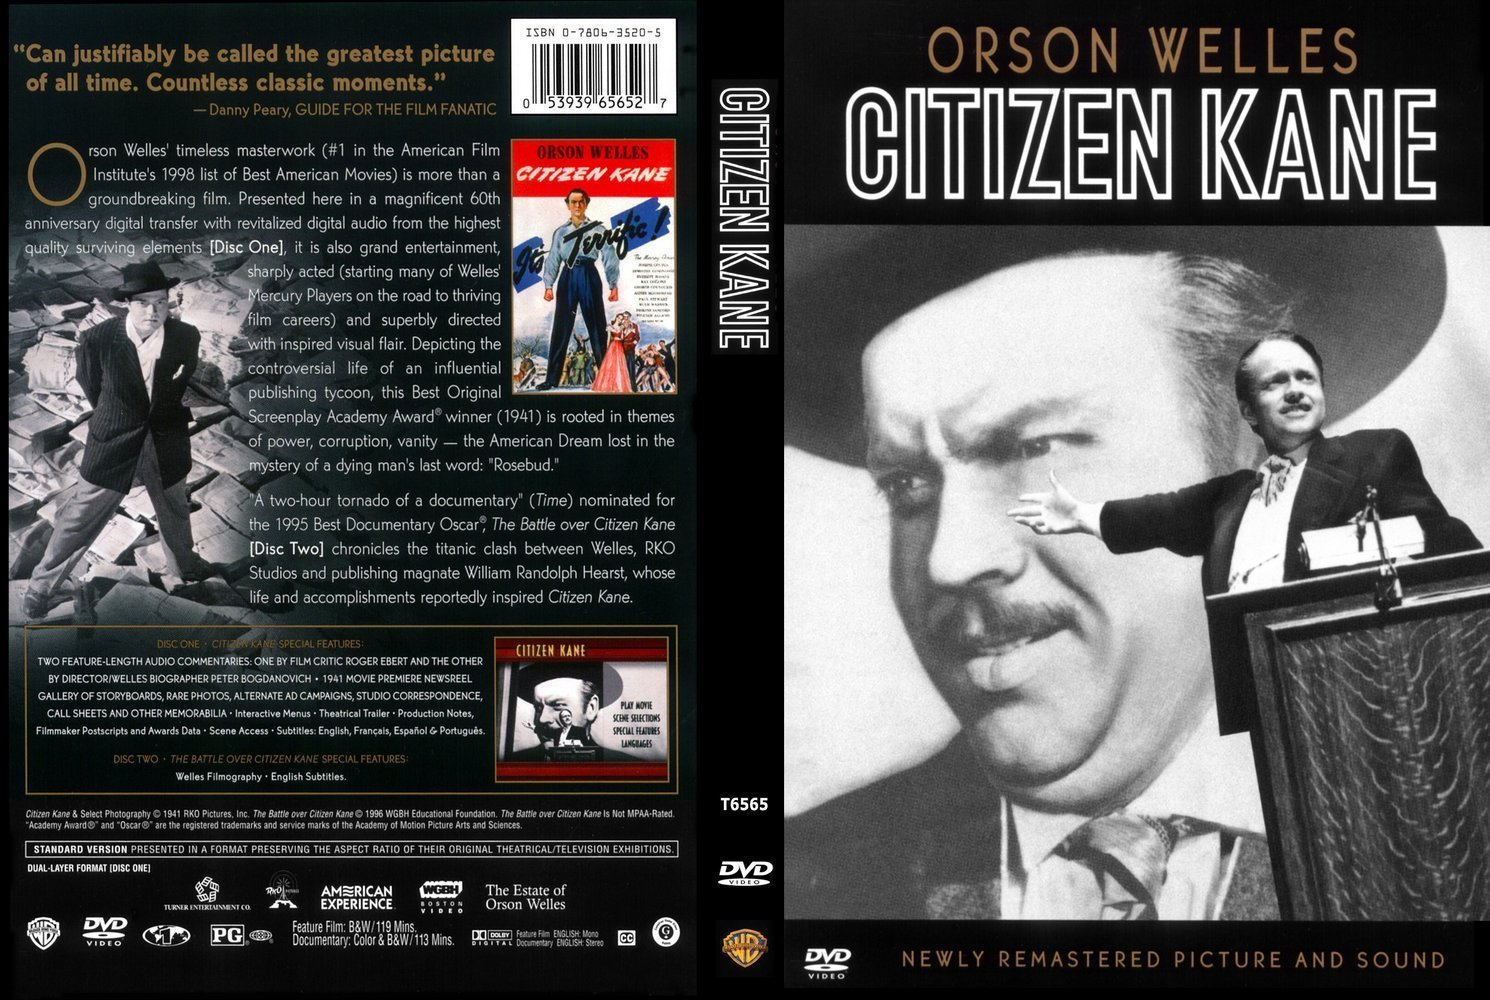 similarities between charles foster kane from citizen kane and william randolph hearts A comparison of william randolph hearst and a comparison of william randolph hearst and citizen kane and between charles foster kane and william randolph.